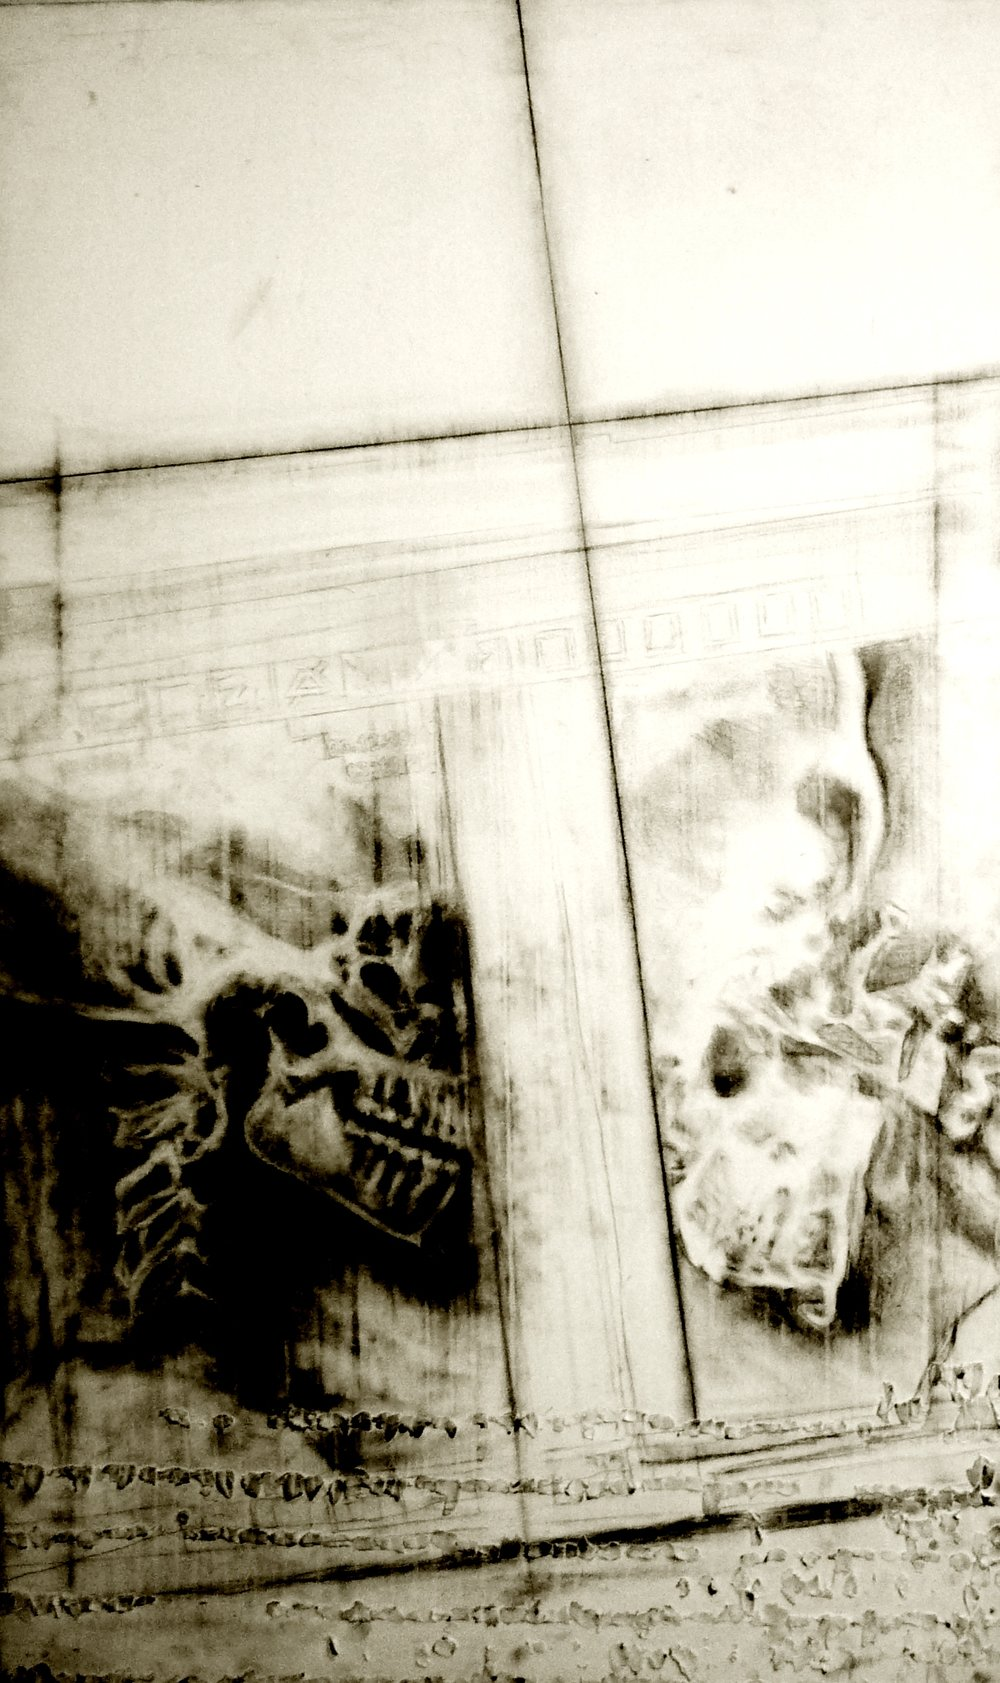 The Unconscious Decision, 50 in. x 30 in., graphite and charcoal on canvas, 2011